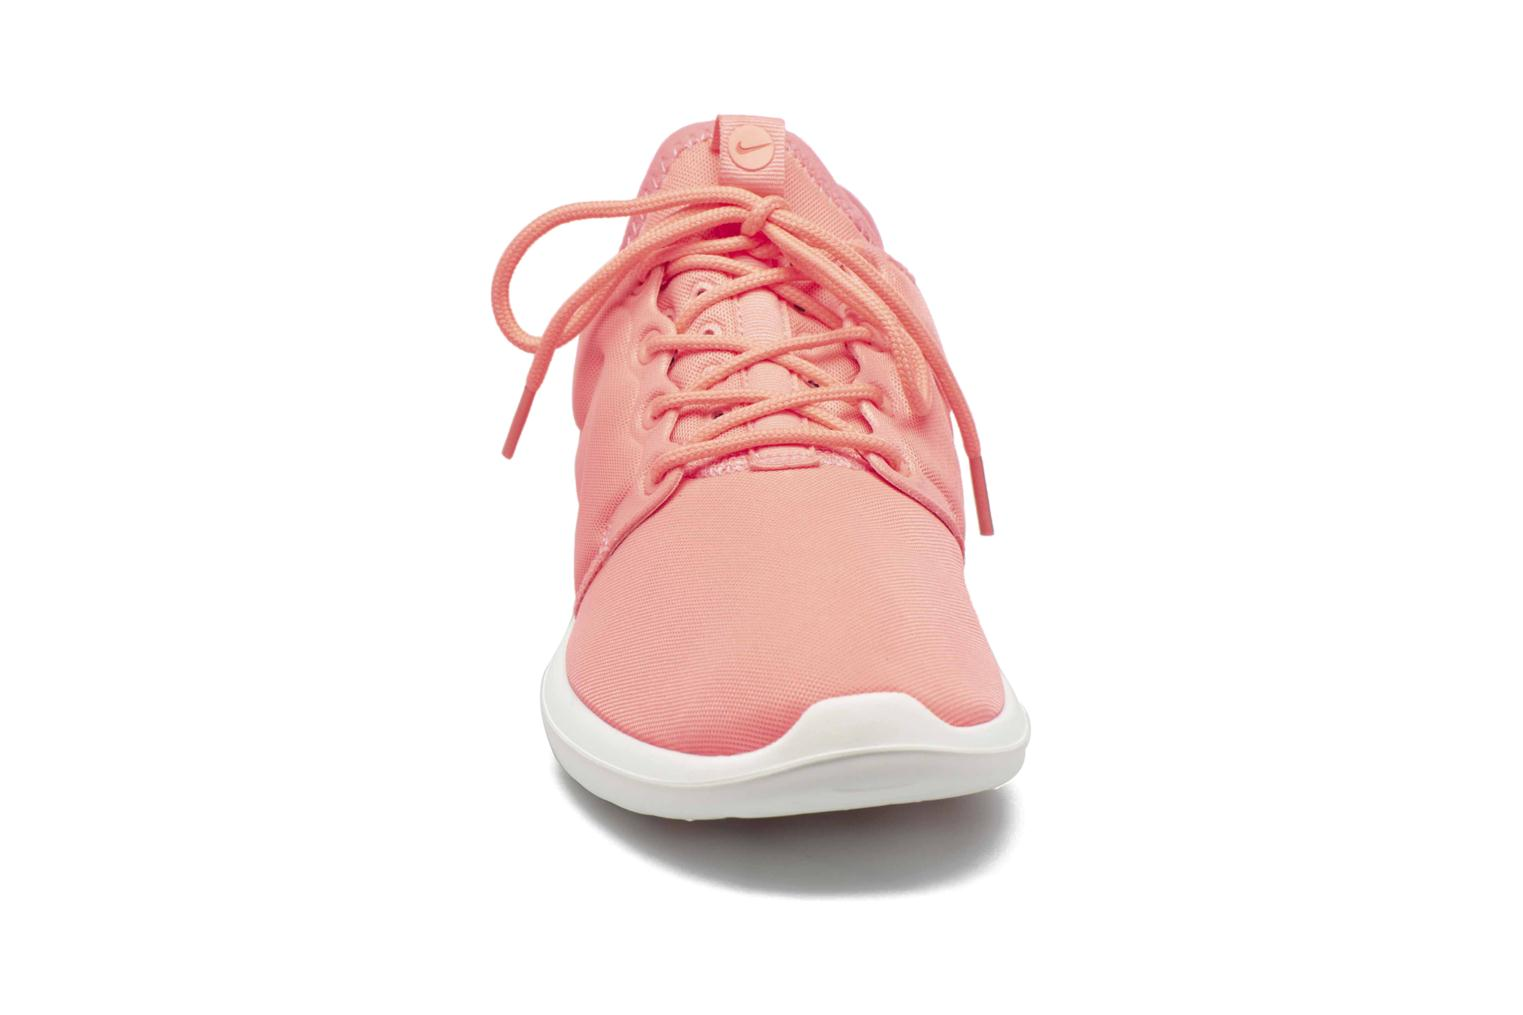 W Nike Roshe Two Atomic Pink/Sail-Turf Orange